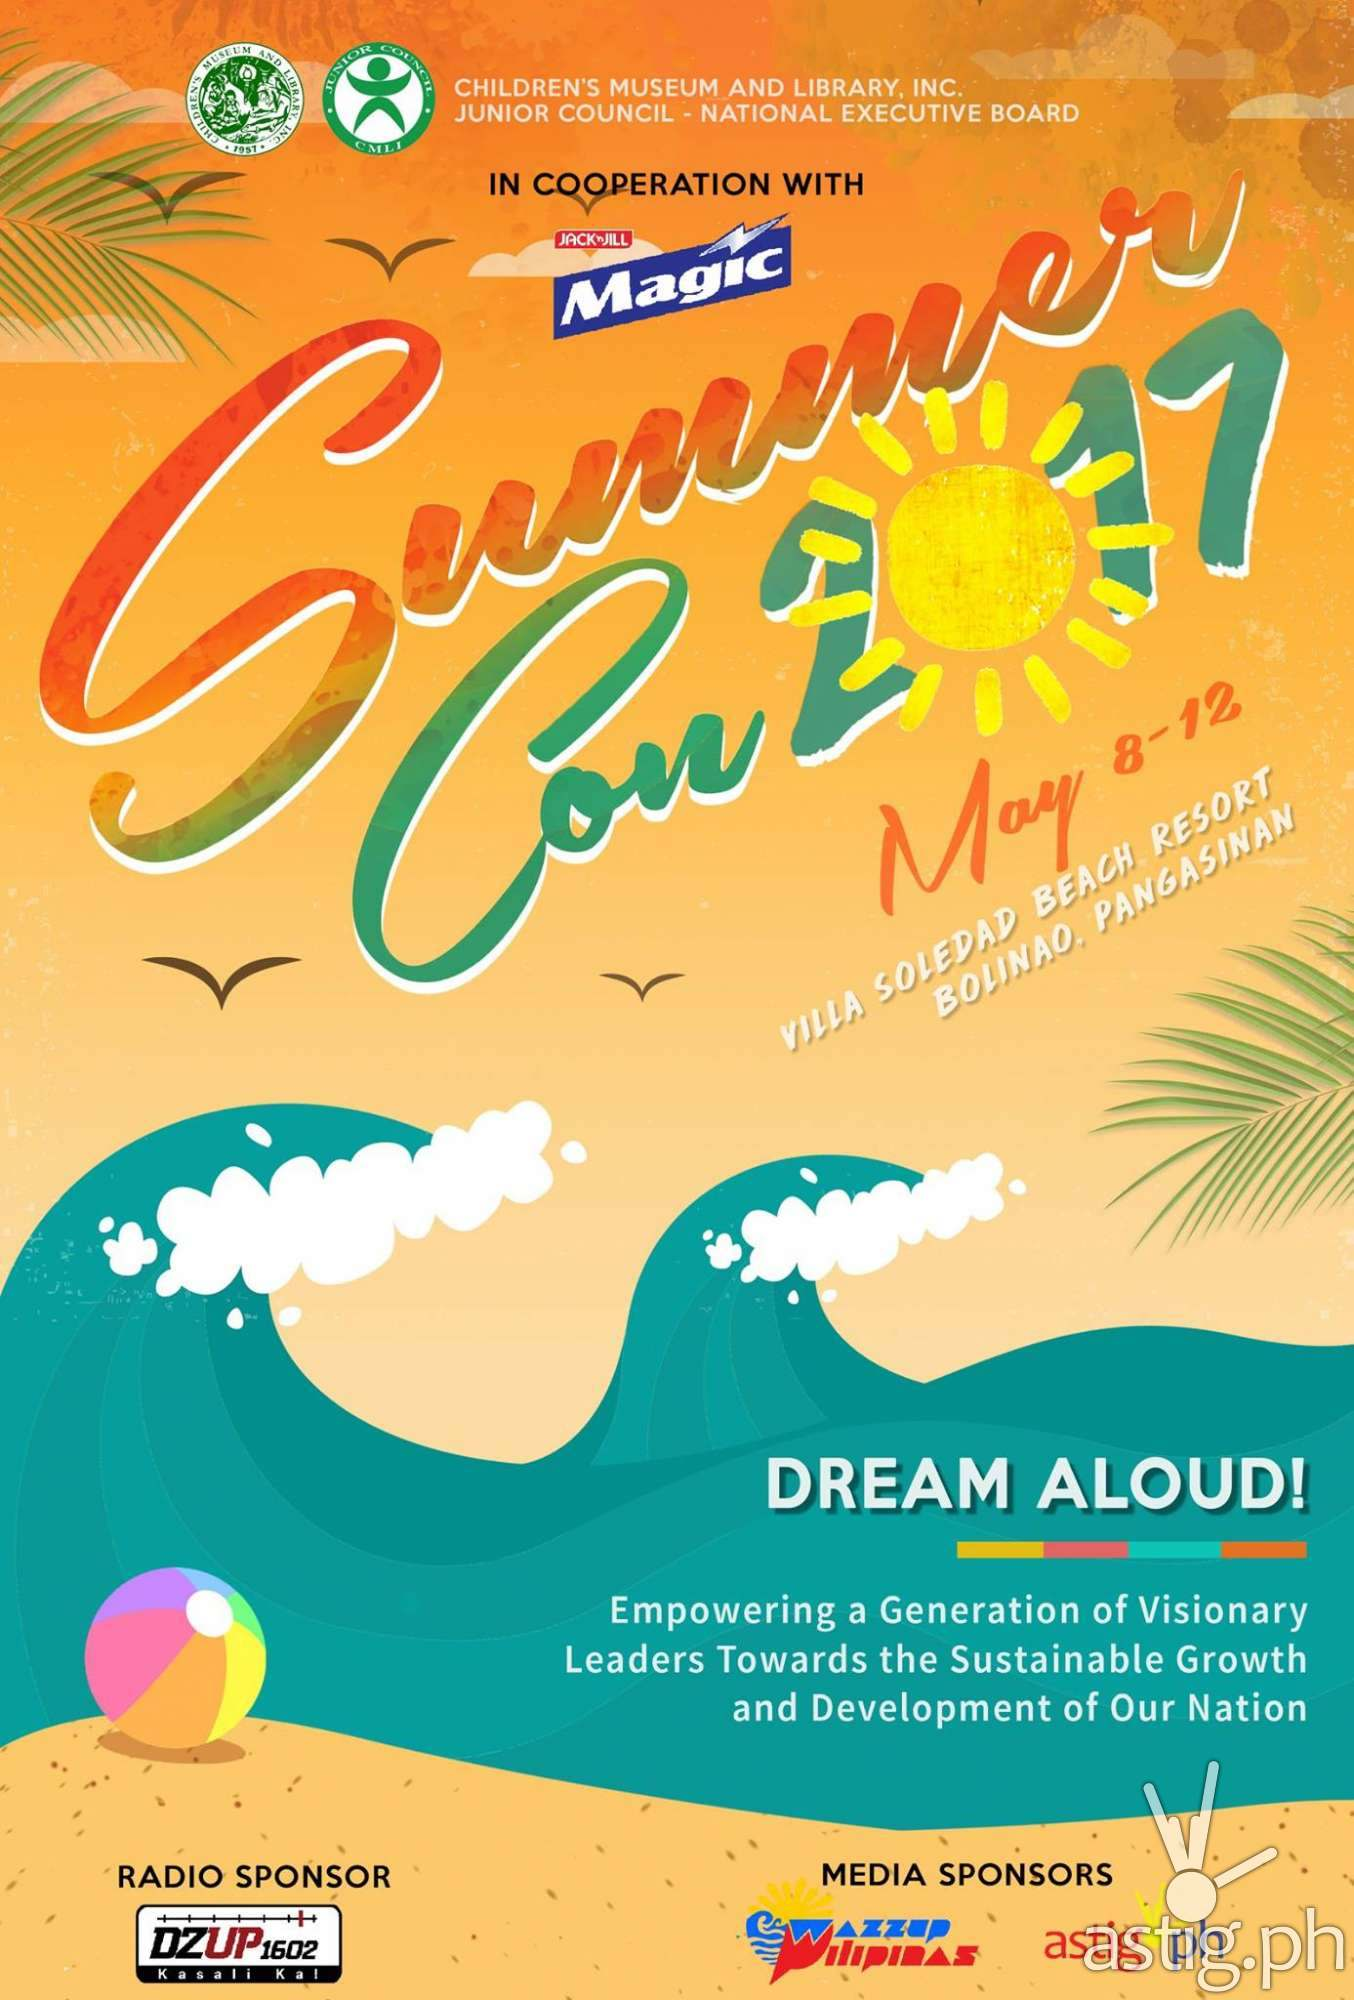 Dream Aloud! Summer Convention 2017 by CMLI poster